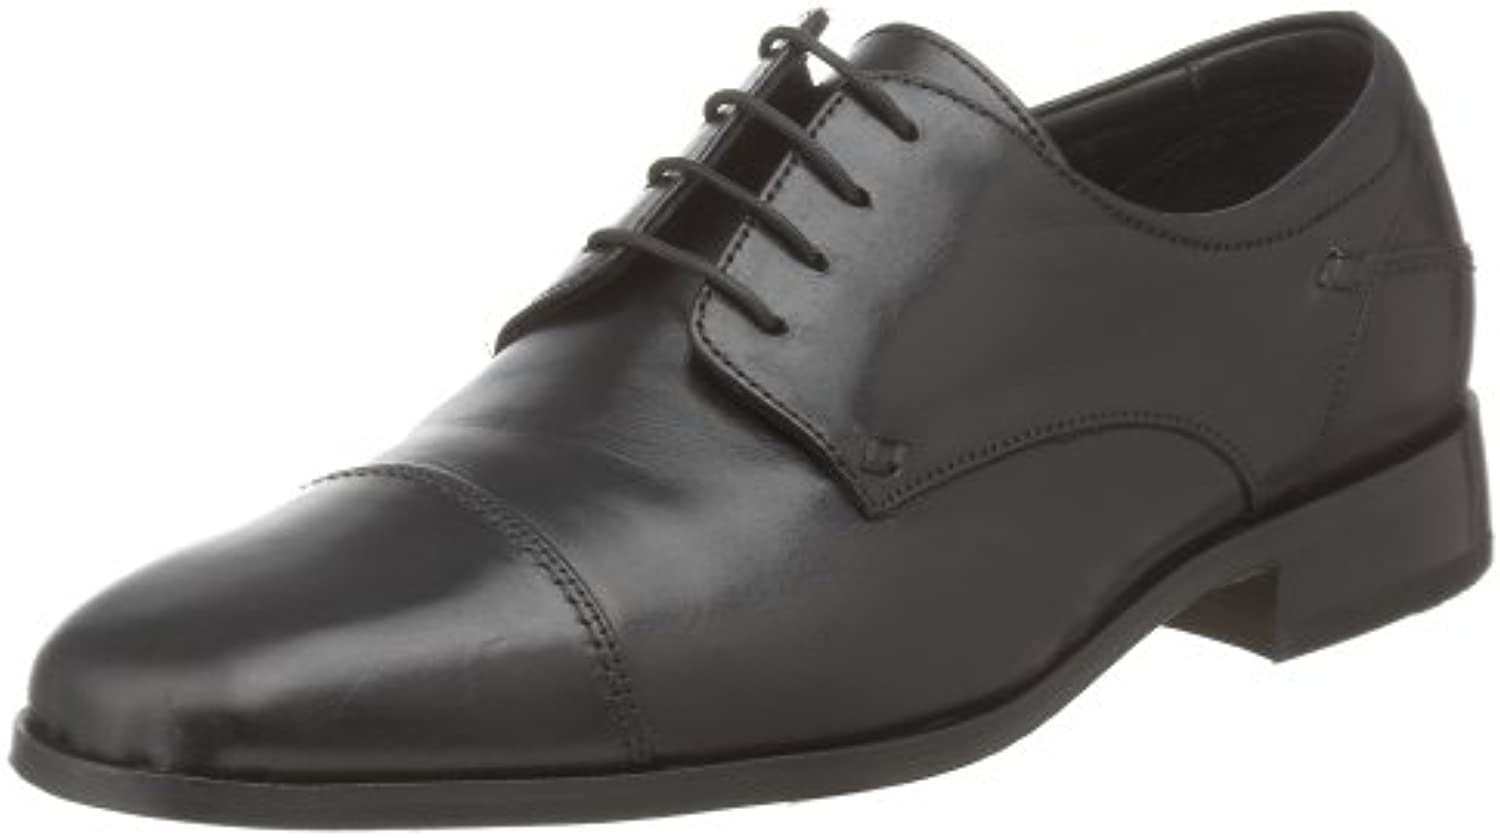 Florsheim Men's Welles Oxford Black 7 EEE